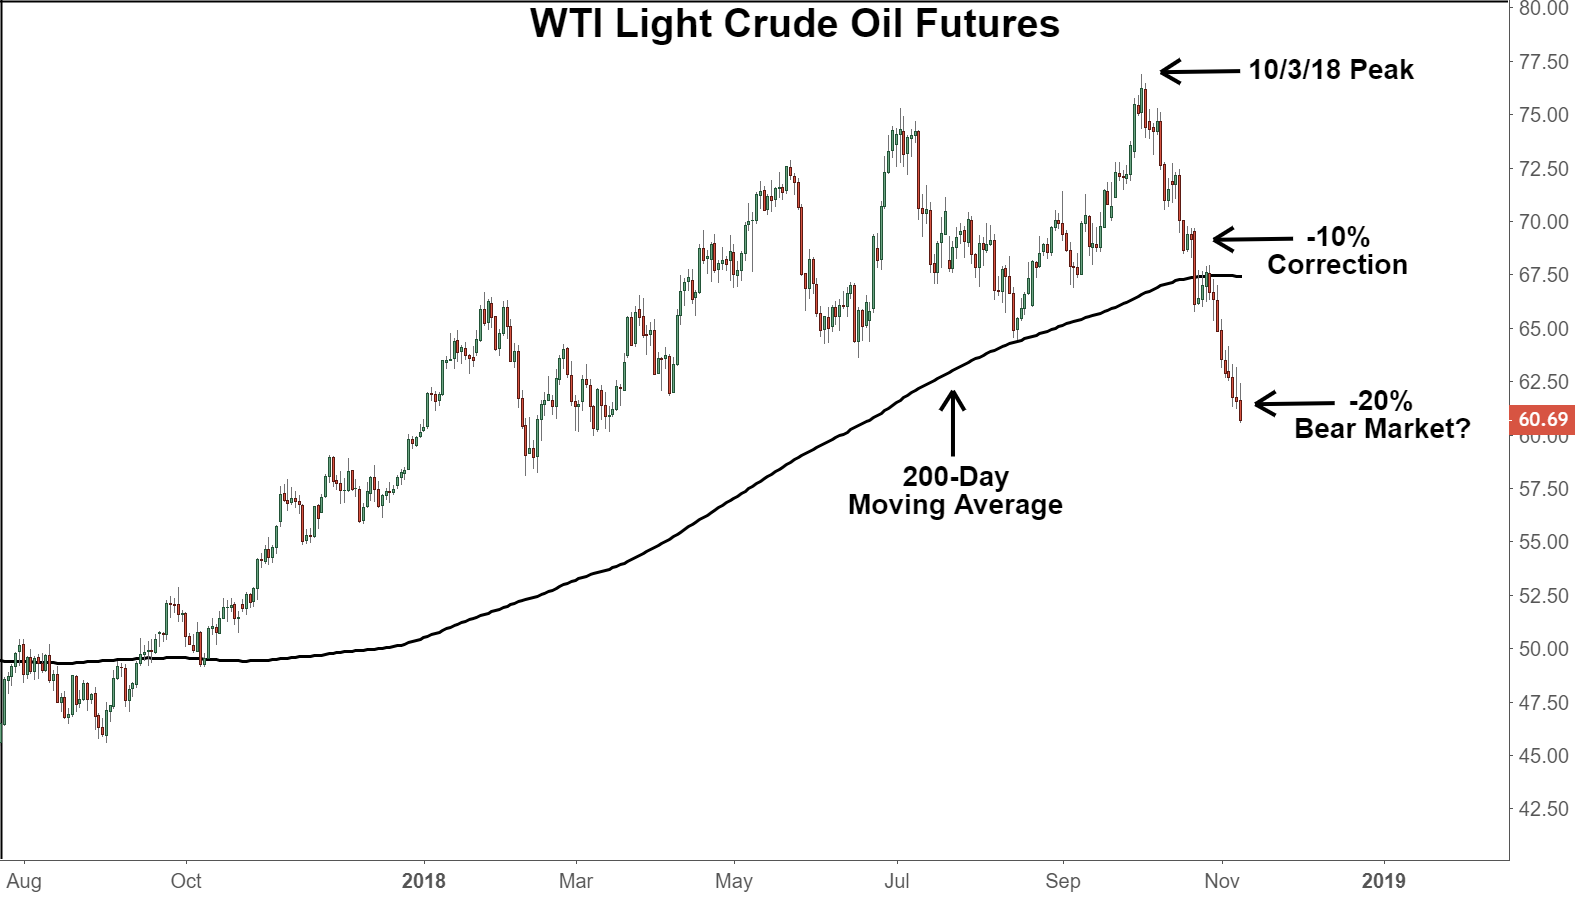 Chart showing the performance of WTI Light Crude Oil Futures prices